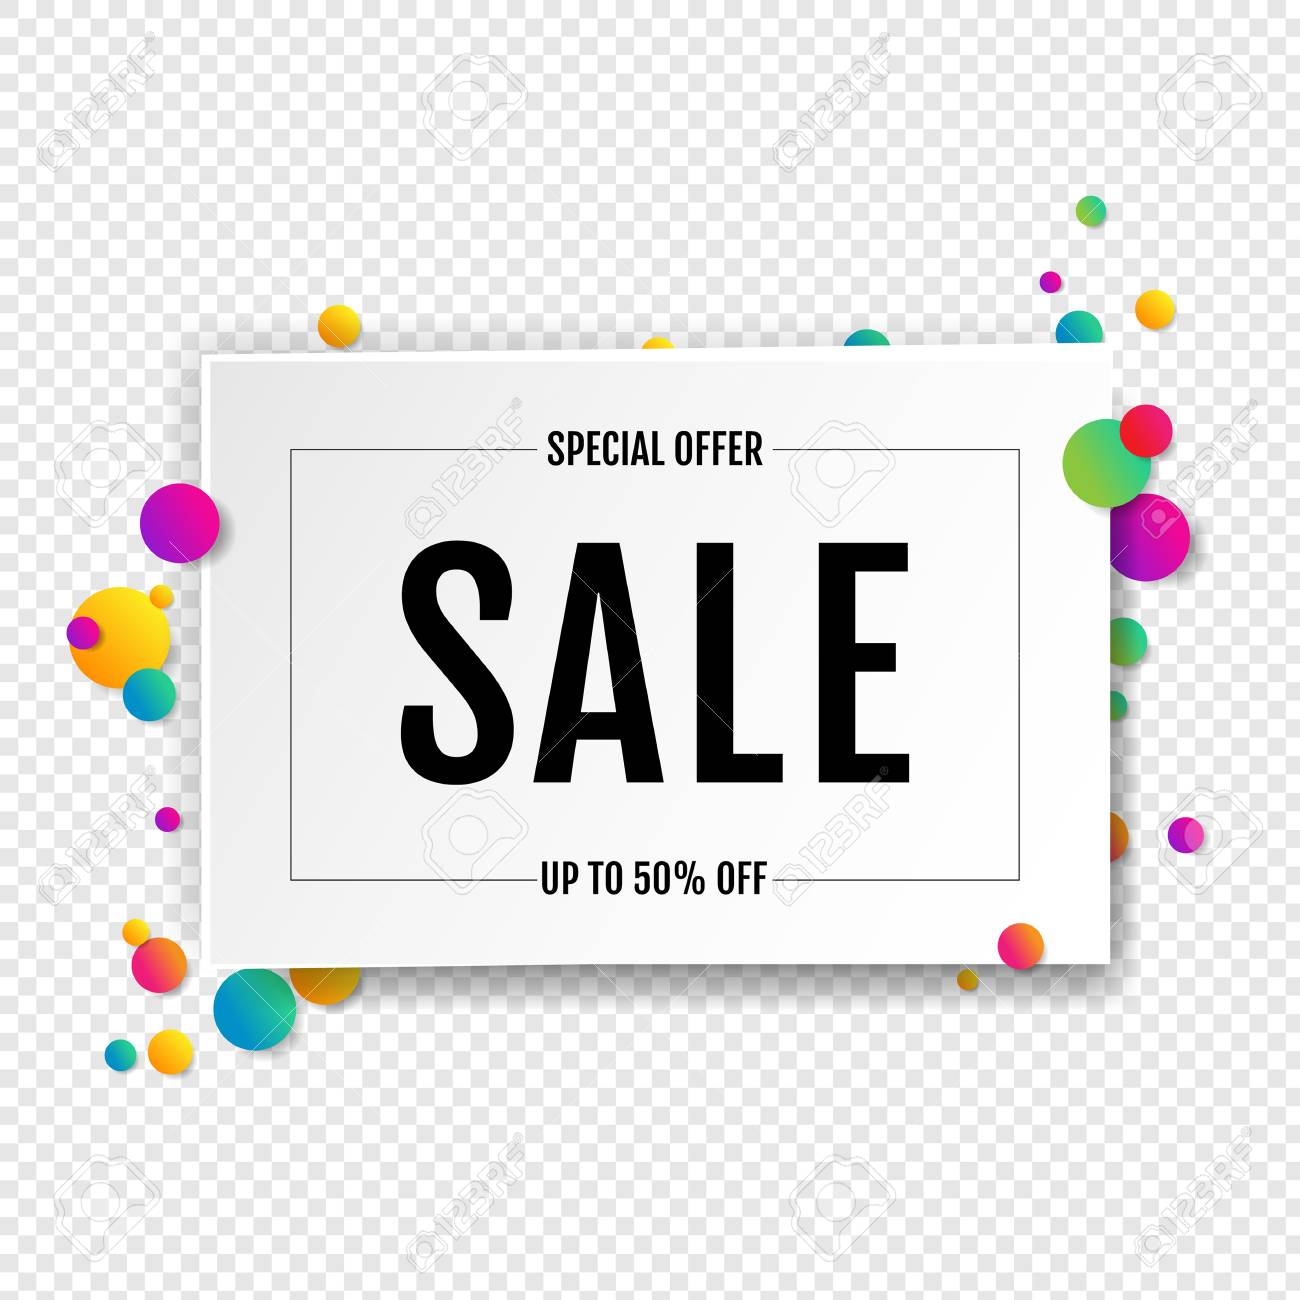 Sale Banner With Ball Transparent Background With Gradient Mesh